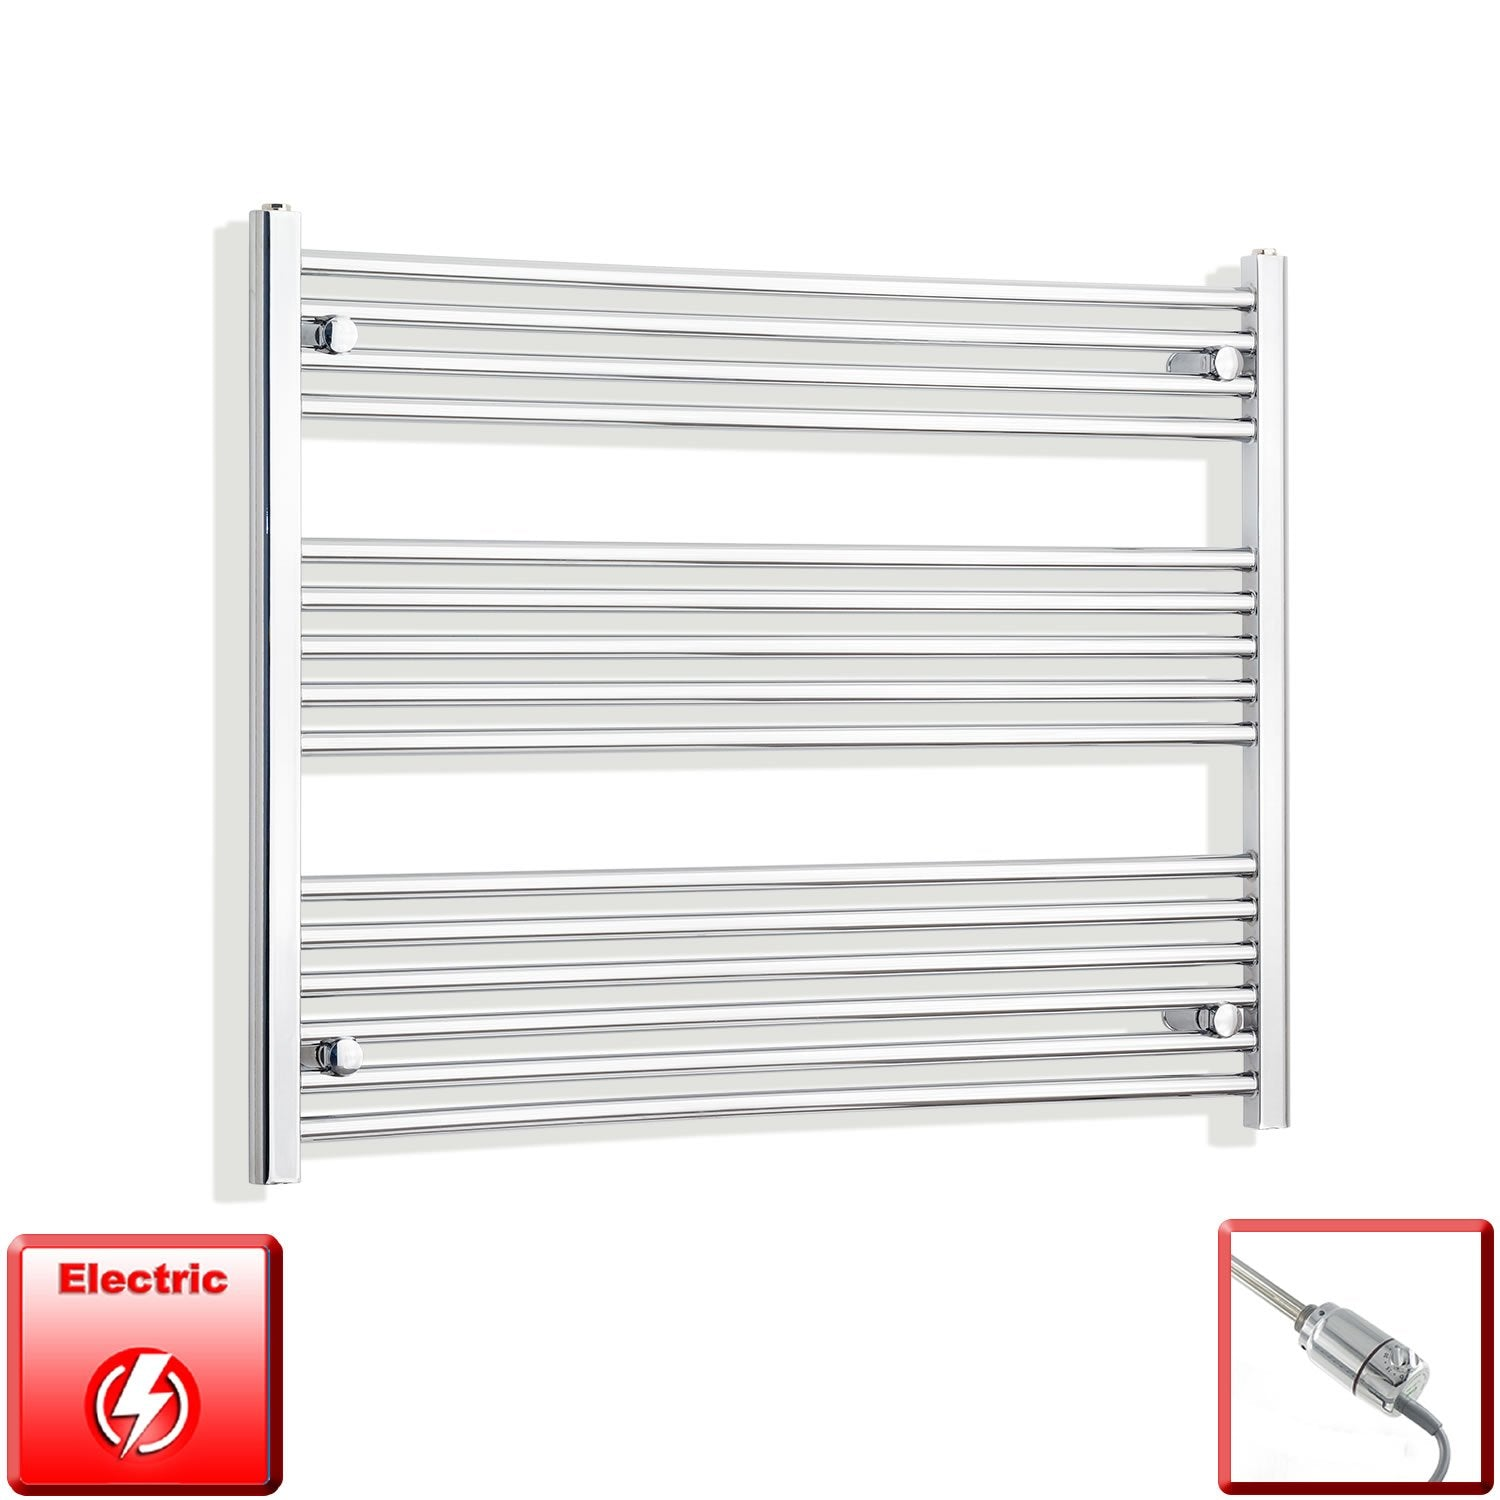 950mm Wide 800mm High Flat Chrome Pre-Filled Electric Heated Towel Rail Radiator HTR,GT Thermostatic